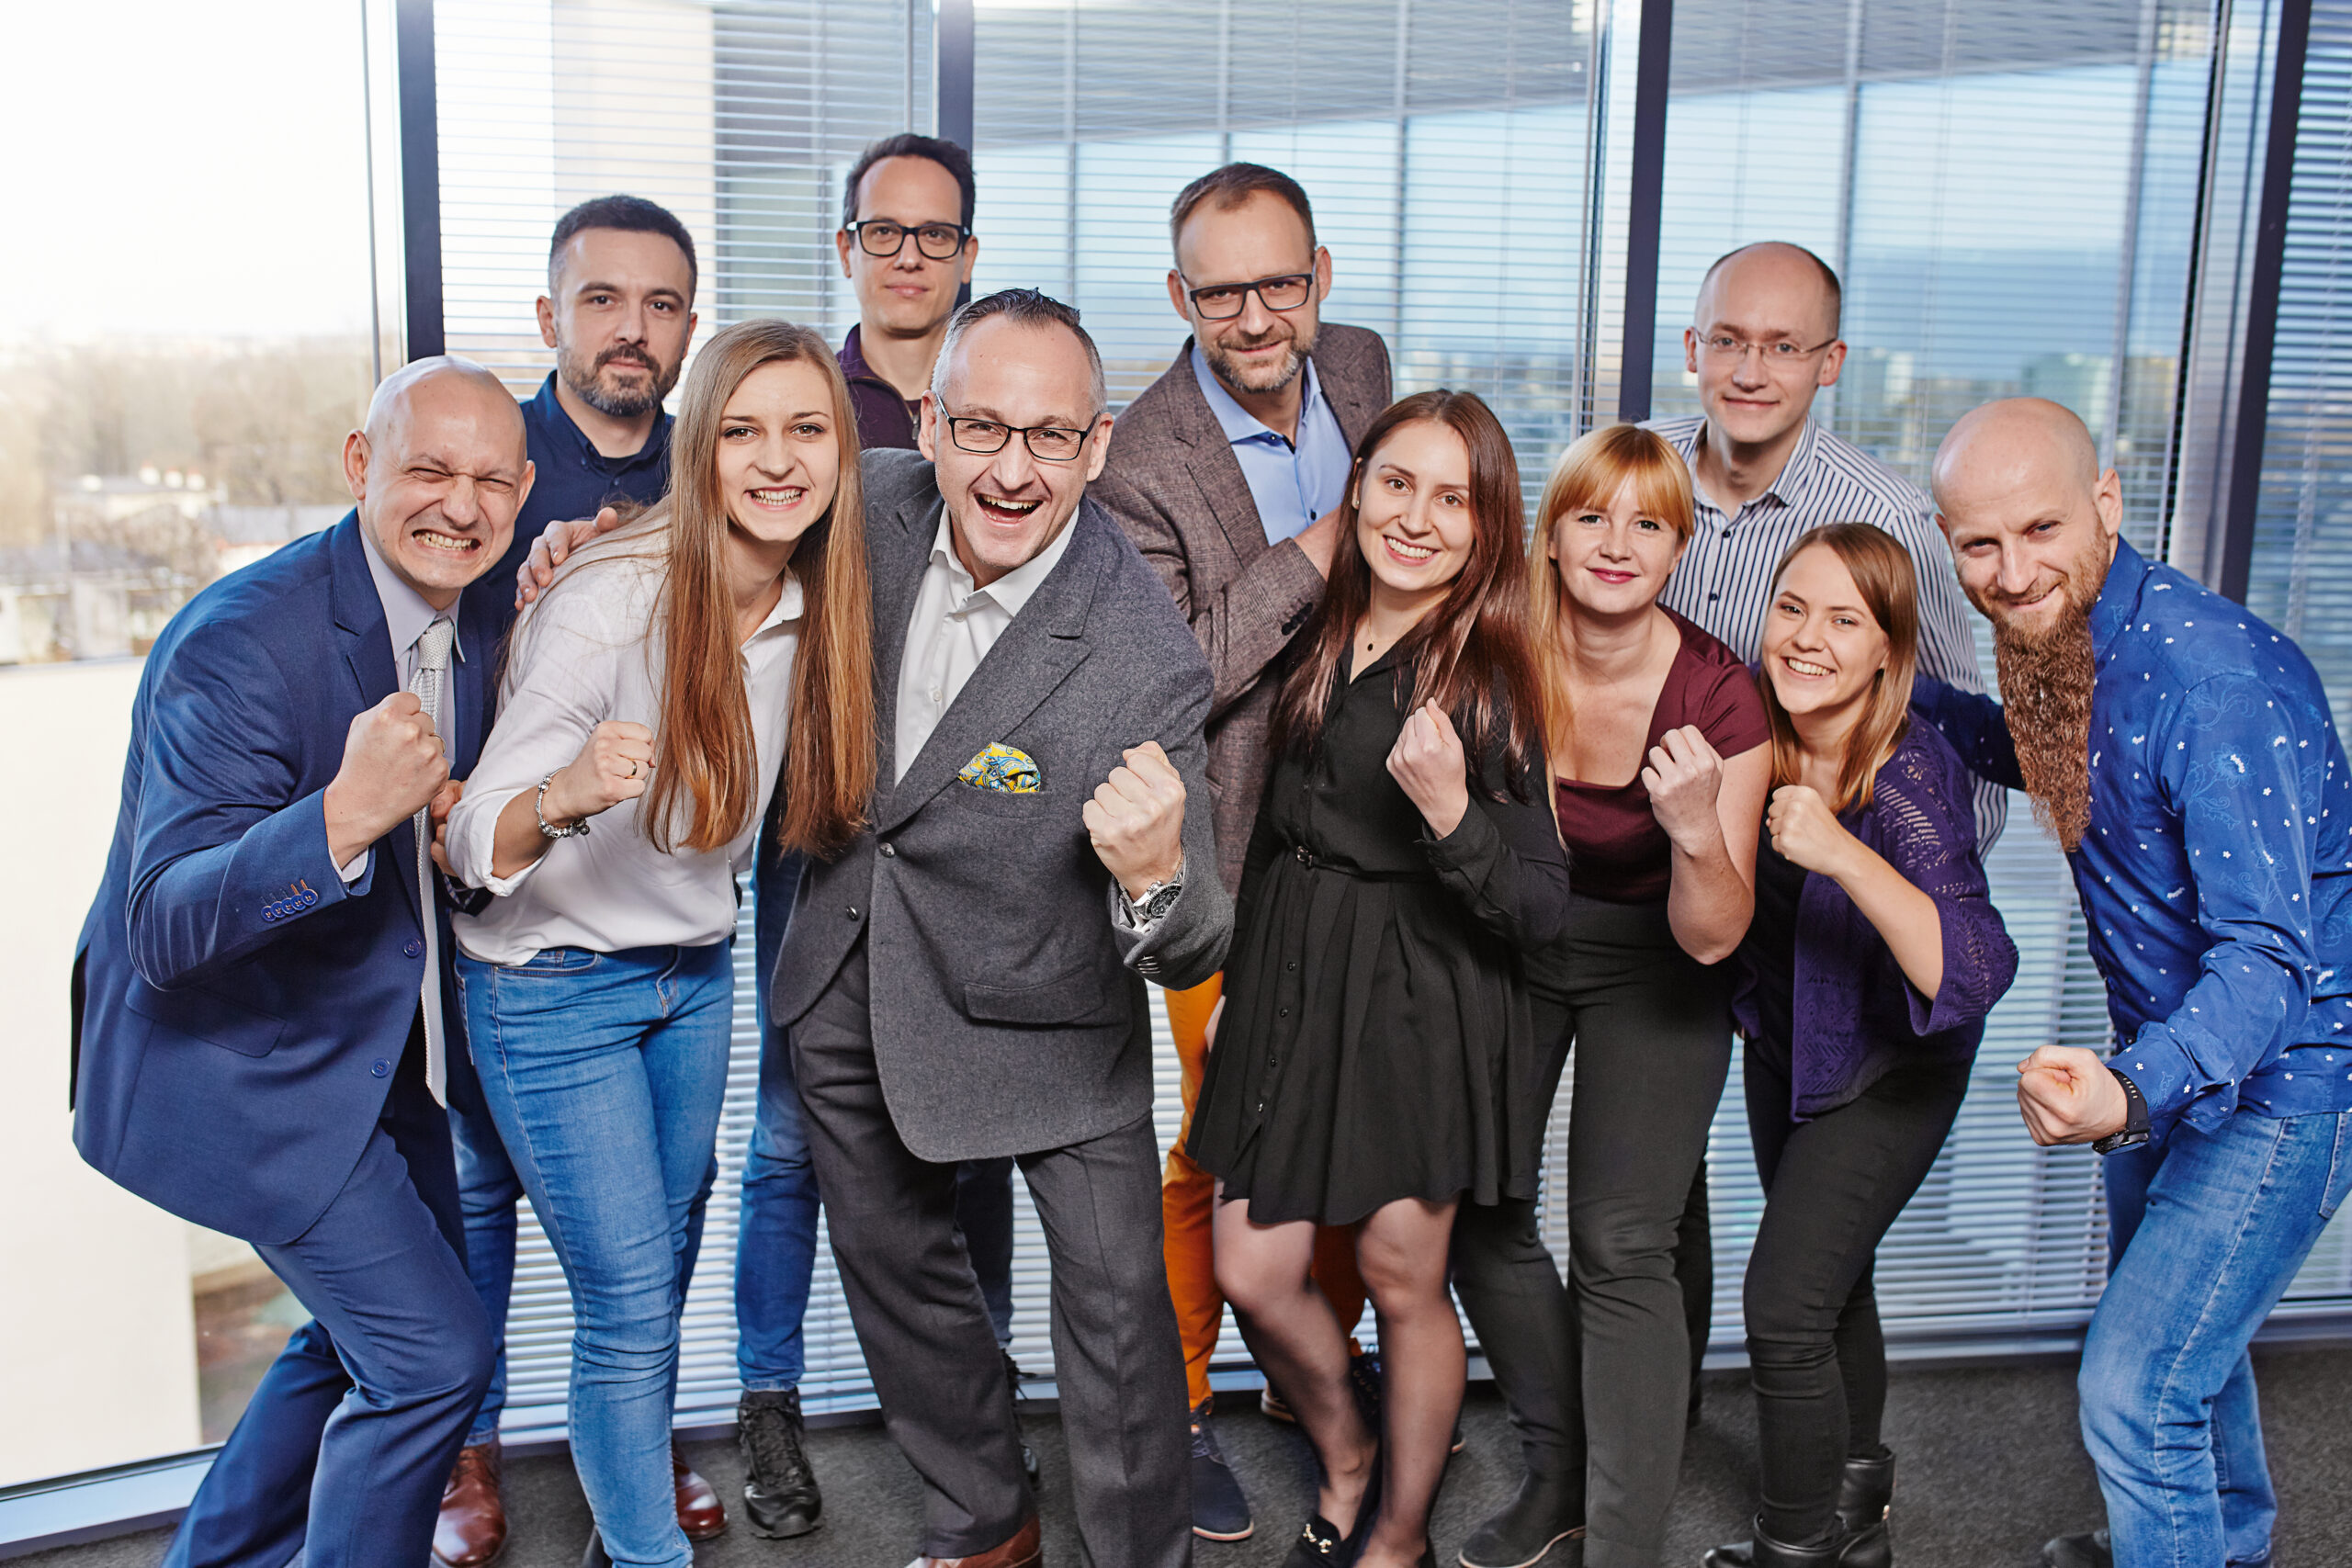 , GFT Poland: An international company delivering technology for banking, industry and insurance sectors with strong Cloud competencies